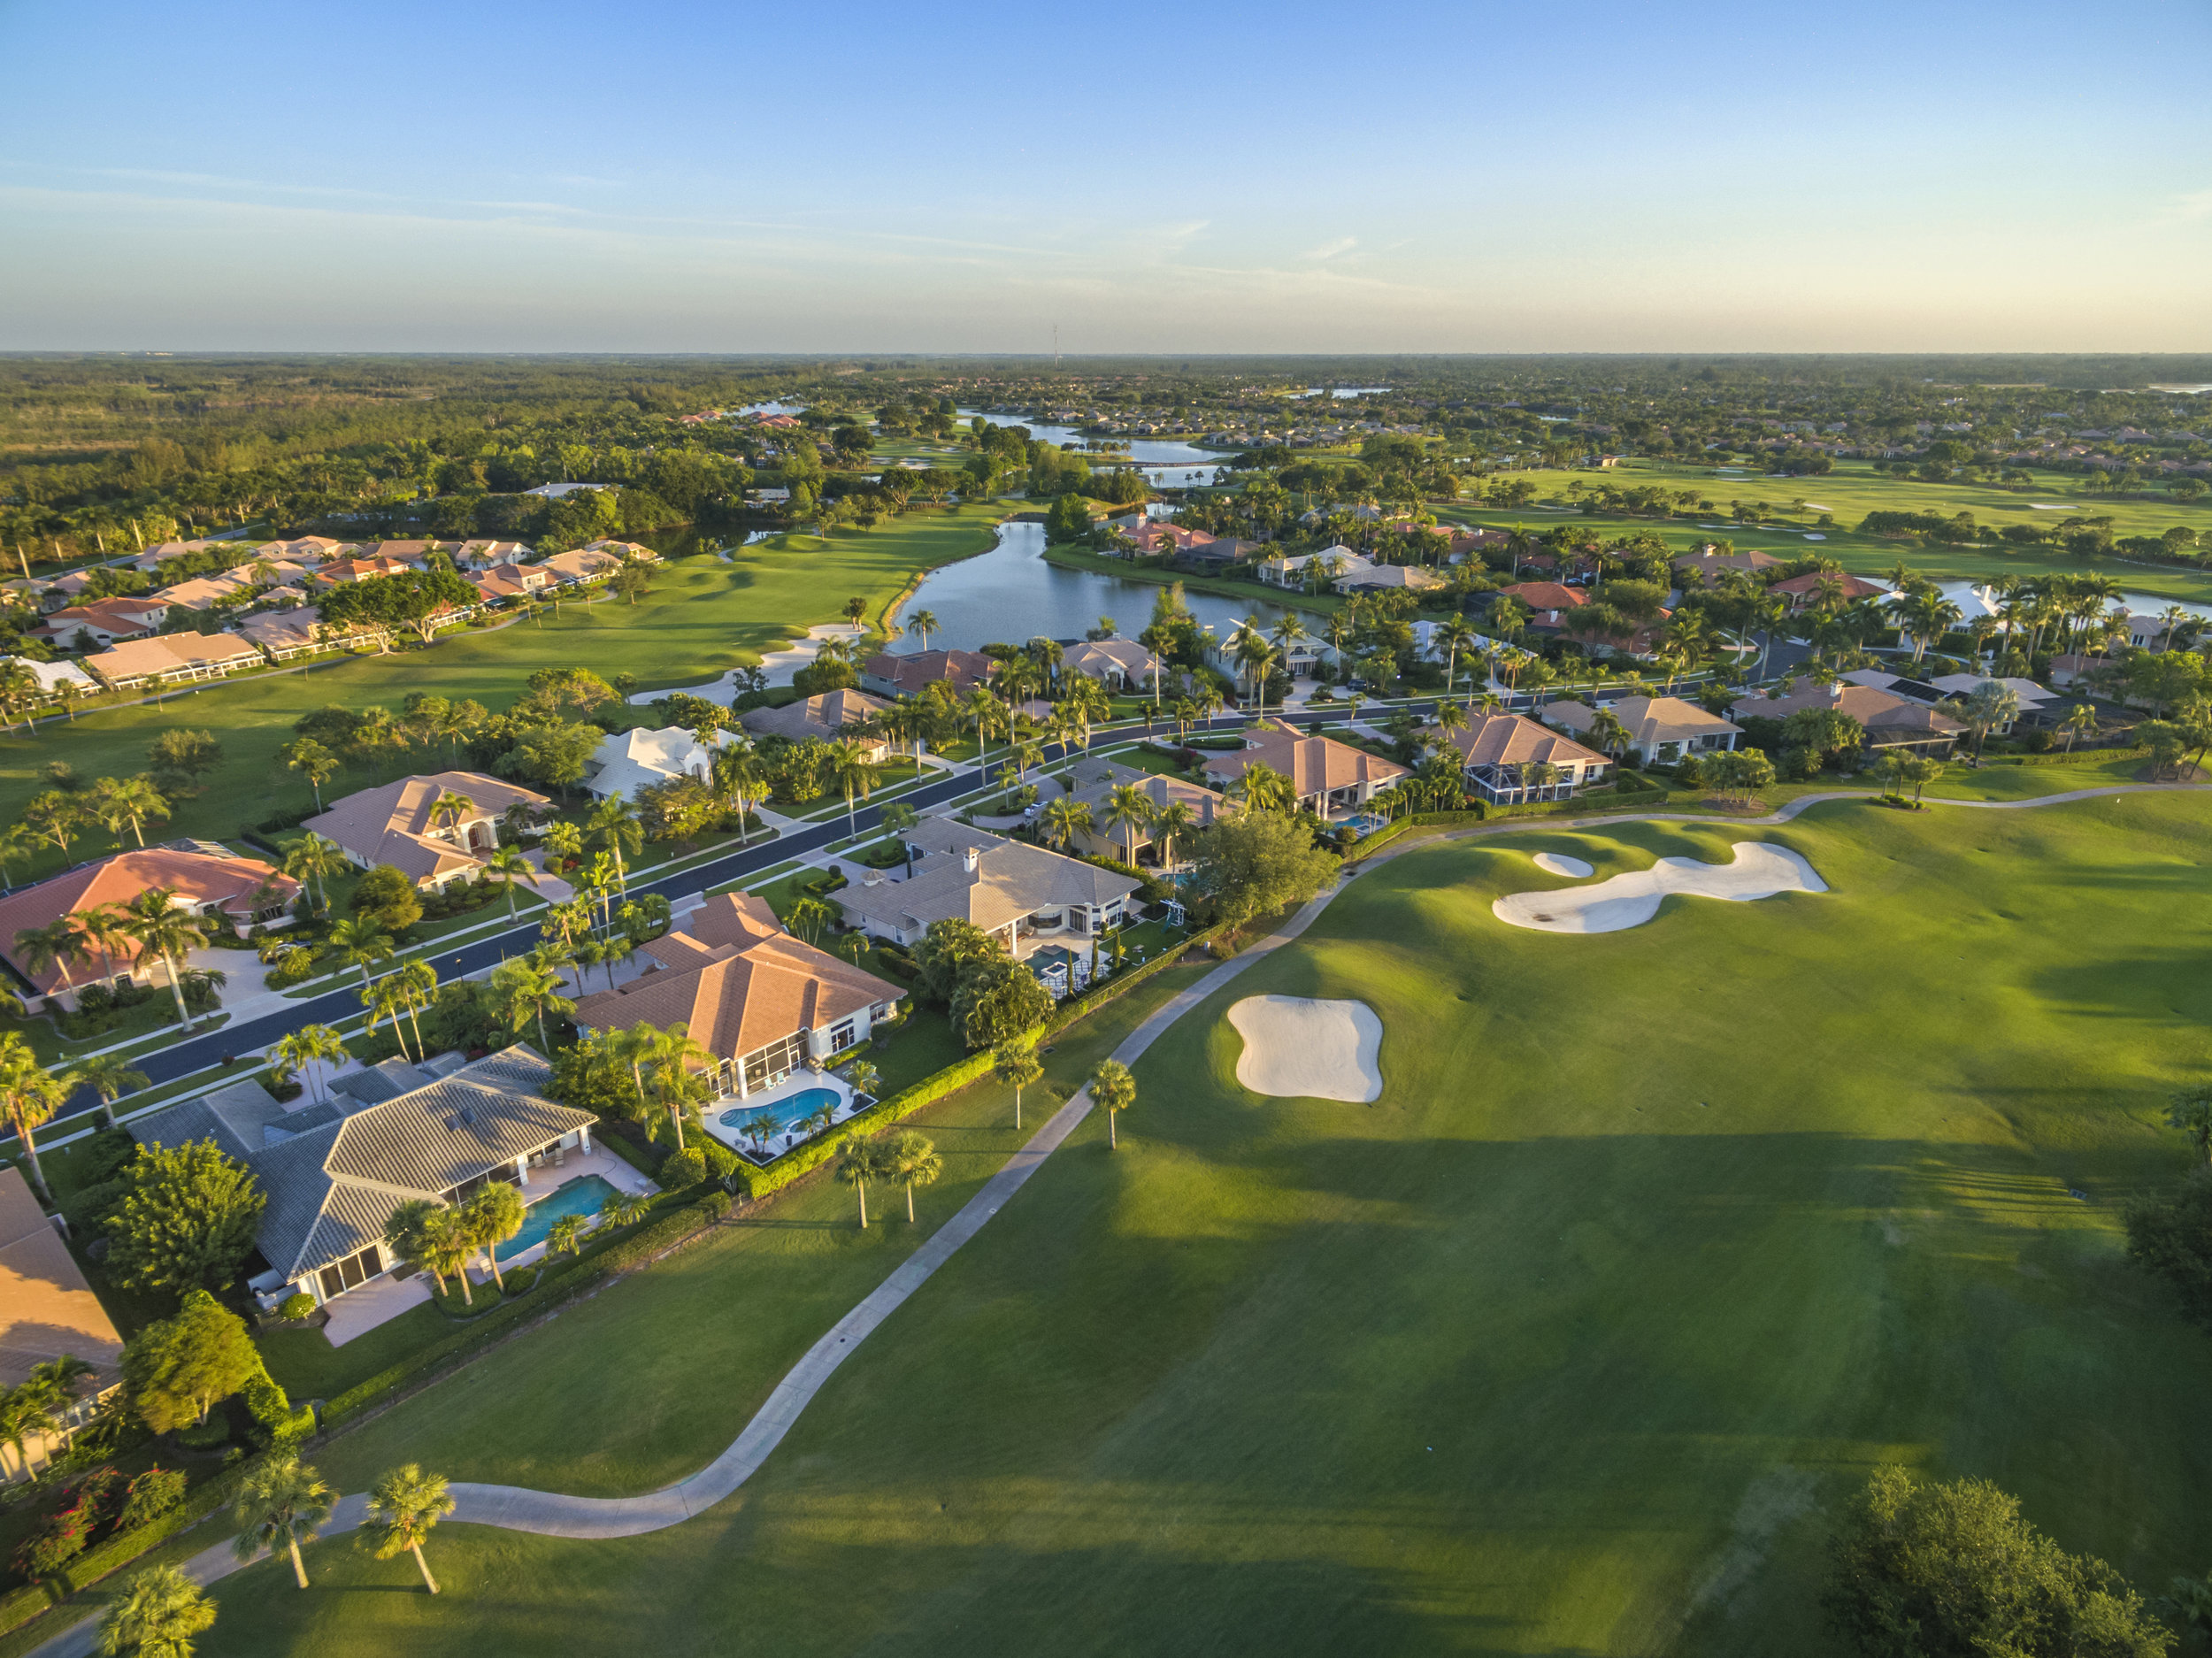 Ibis Golf & Country Club